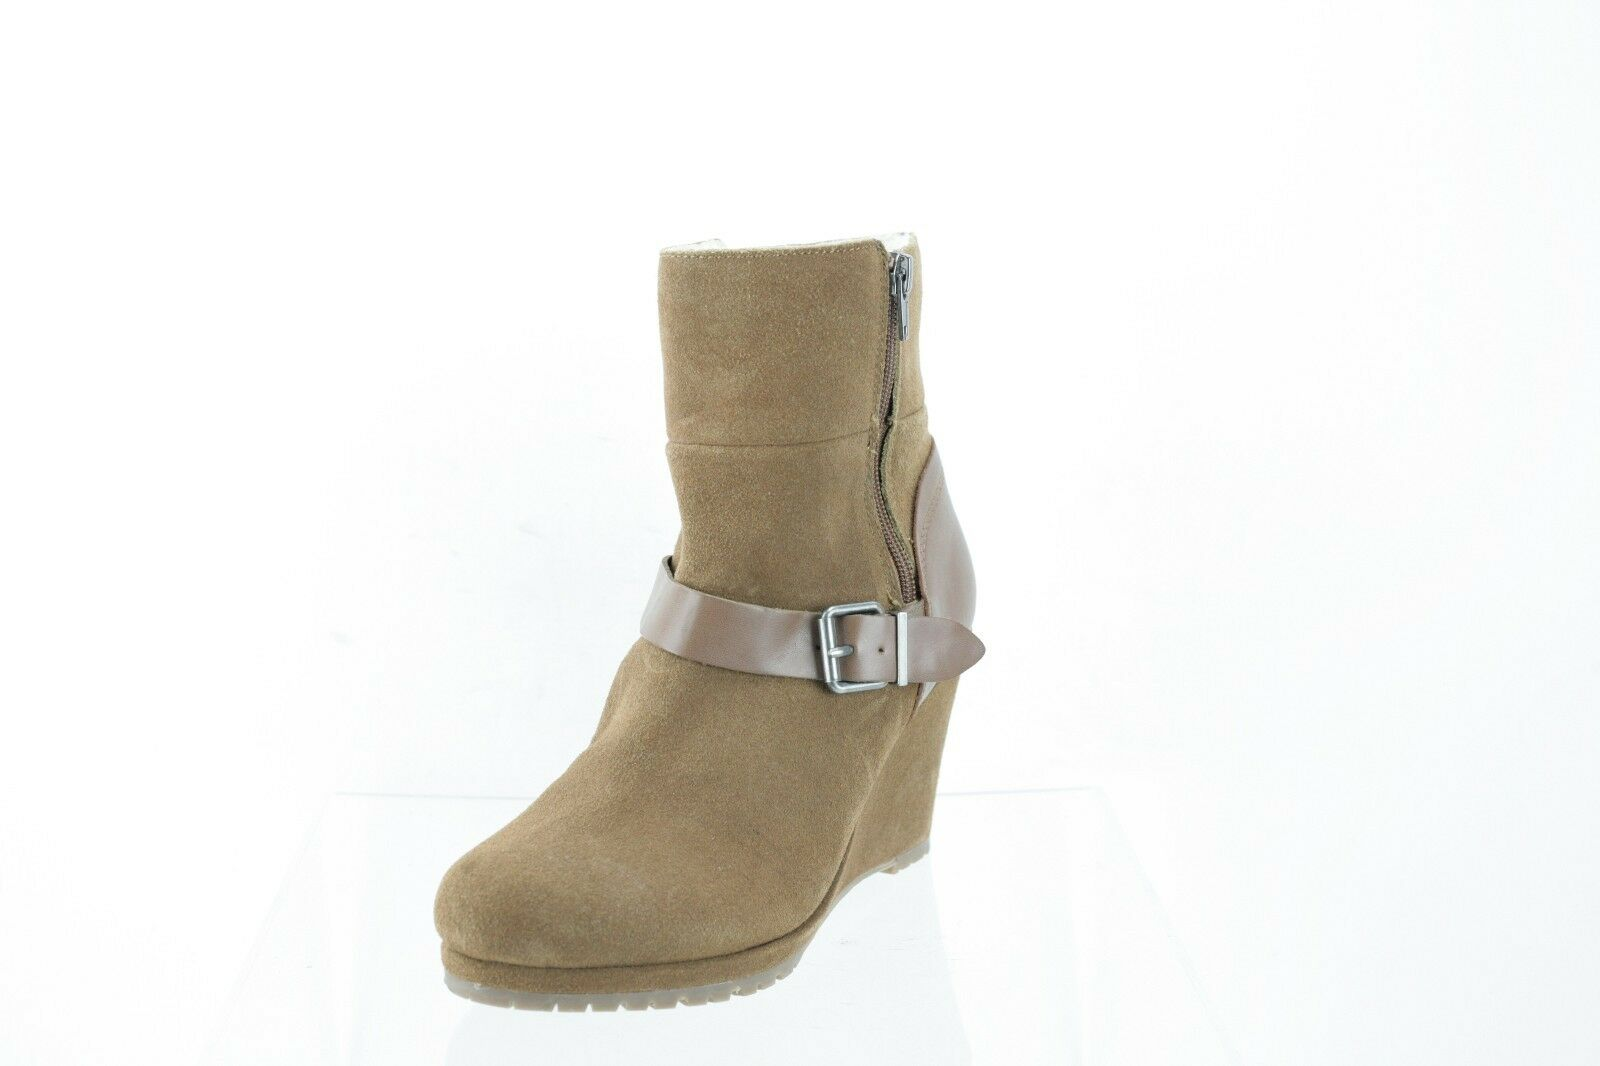 Dolce Vita Gwynn Brown Suede Ankle Boots Women's Shoes Size 8.5 M NEW RTL $220